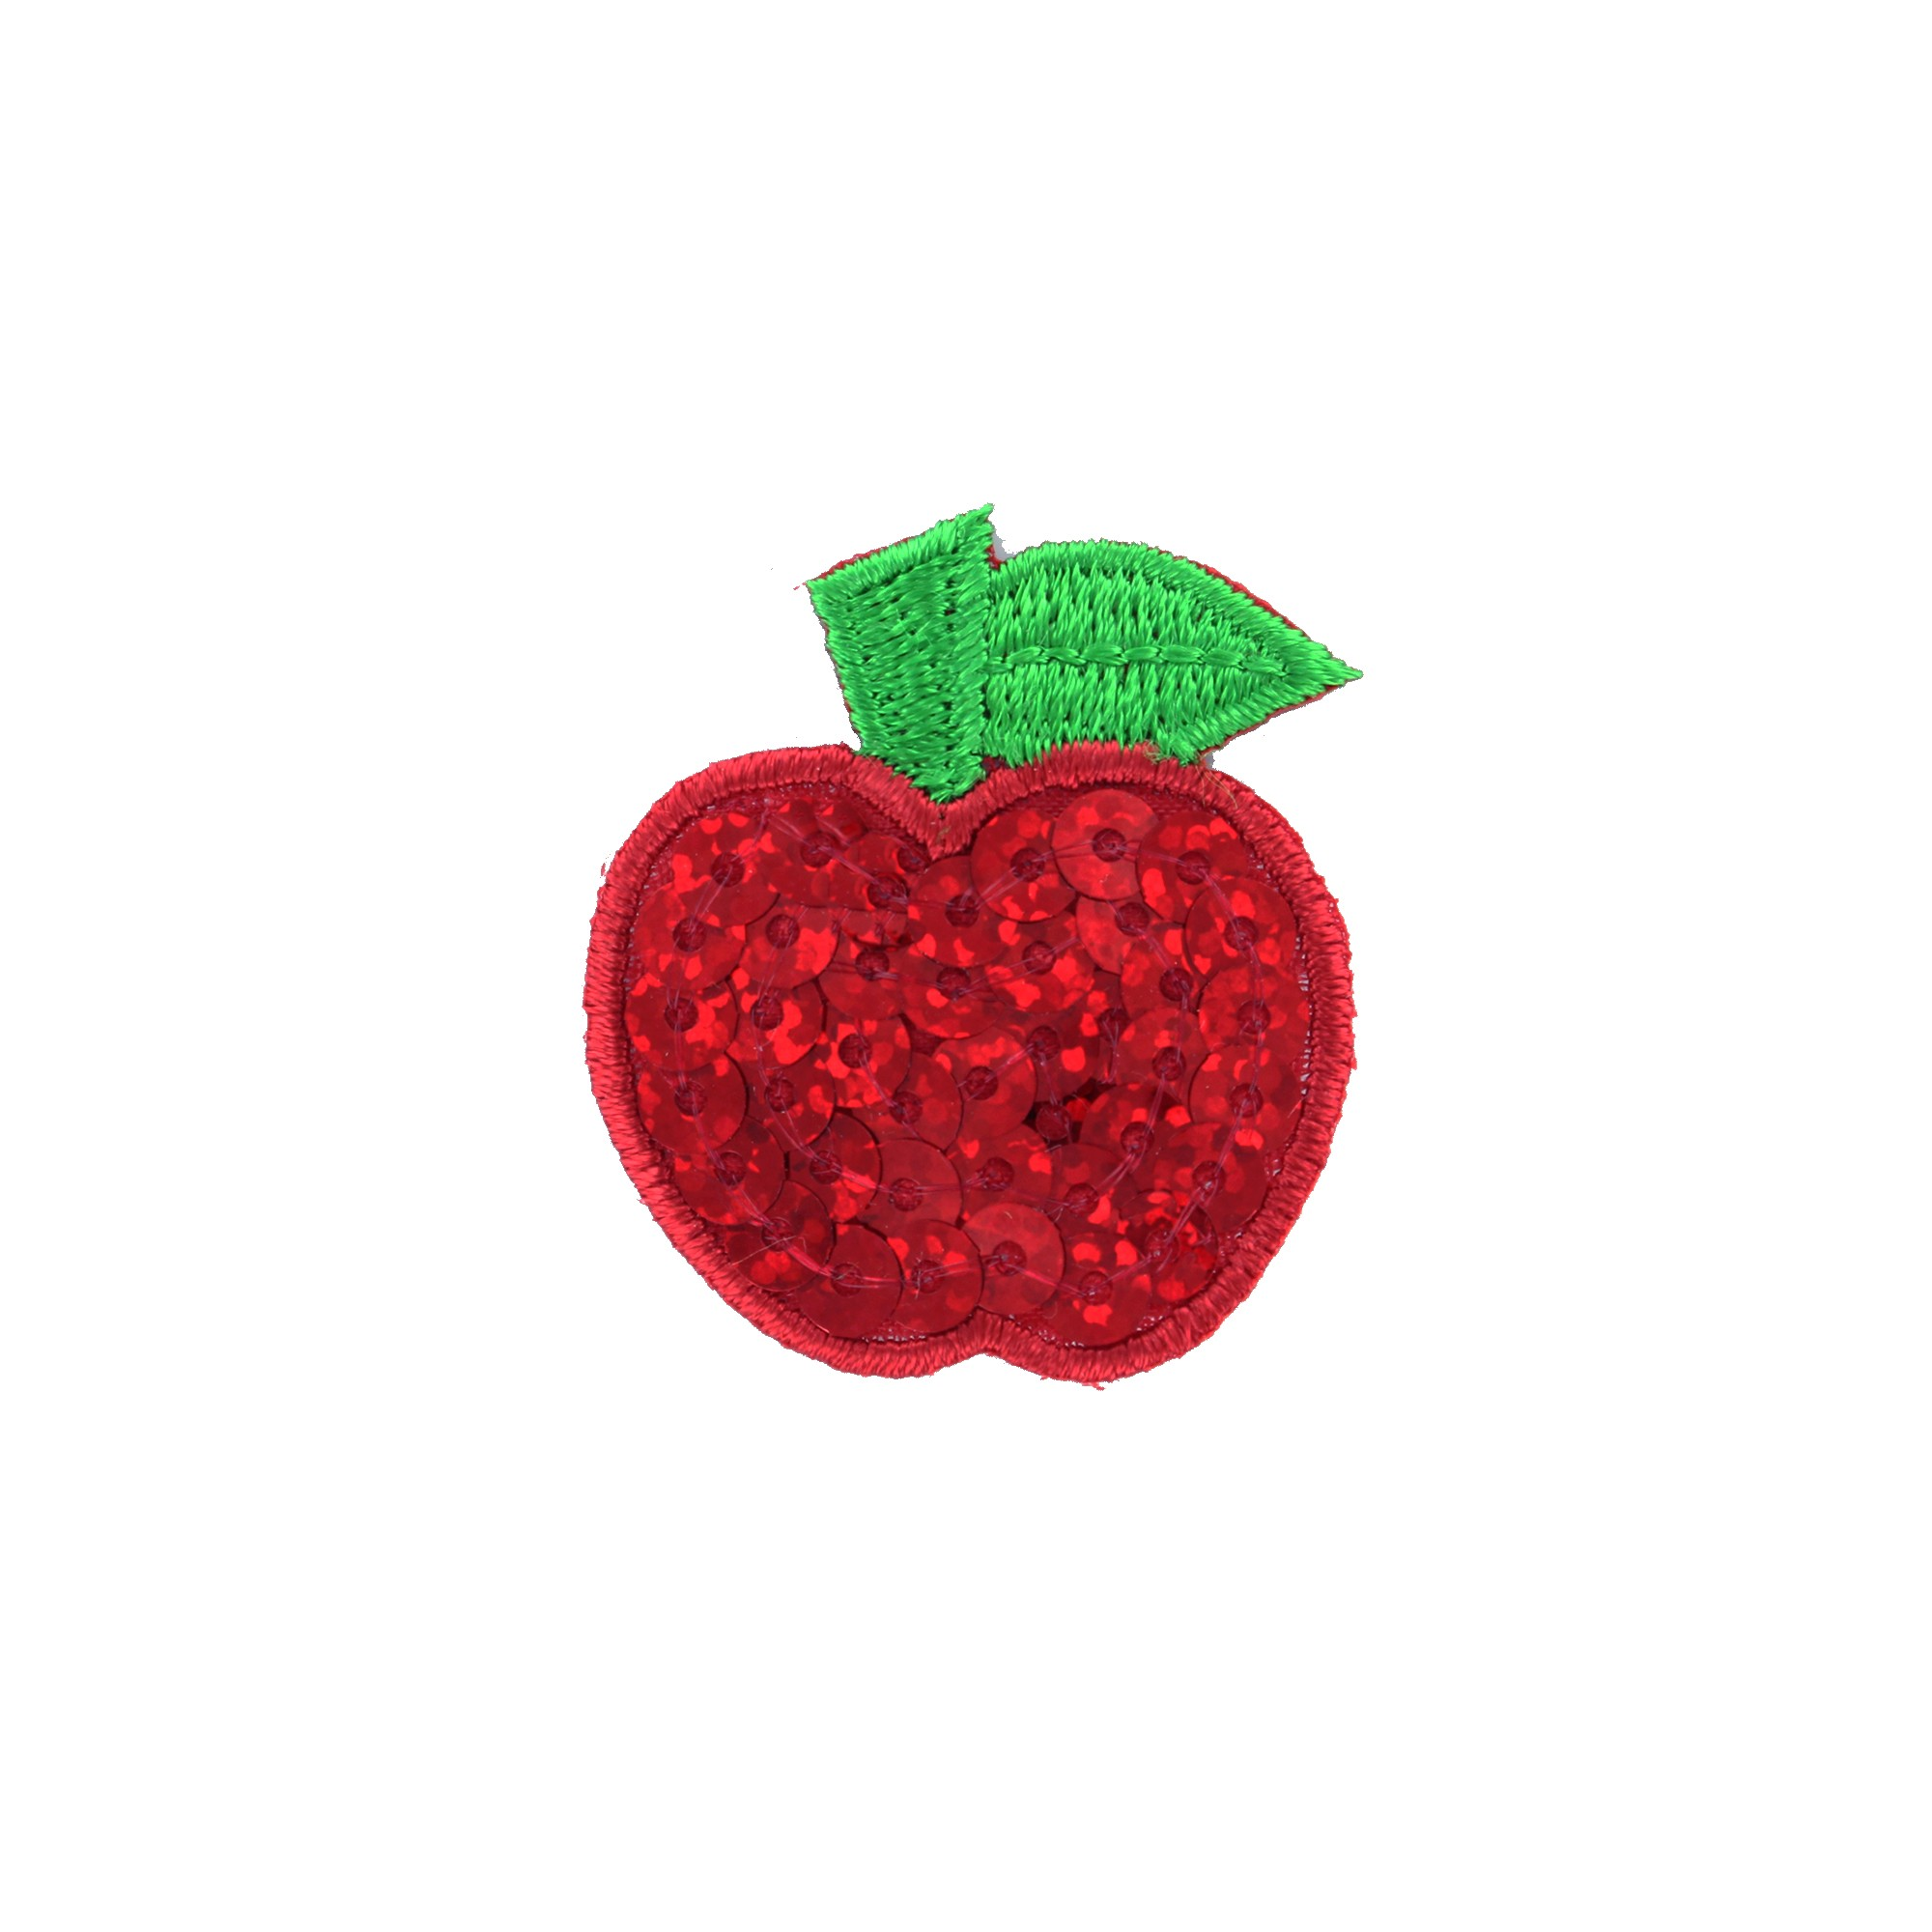 Brodé Thermocollant Rouge Sequins Fruit Pomme xBCdroeW